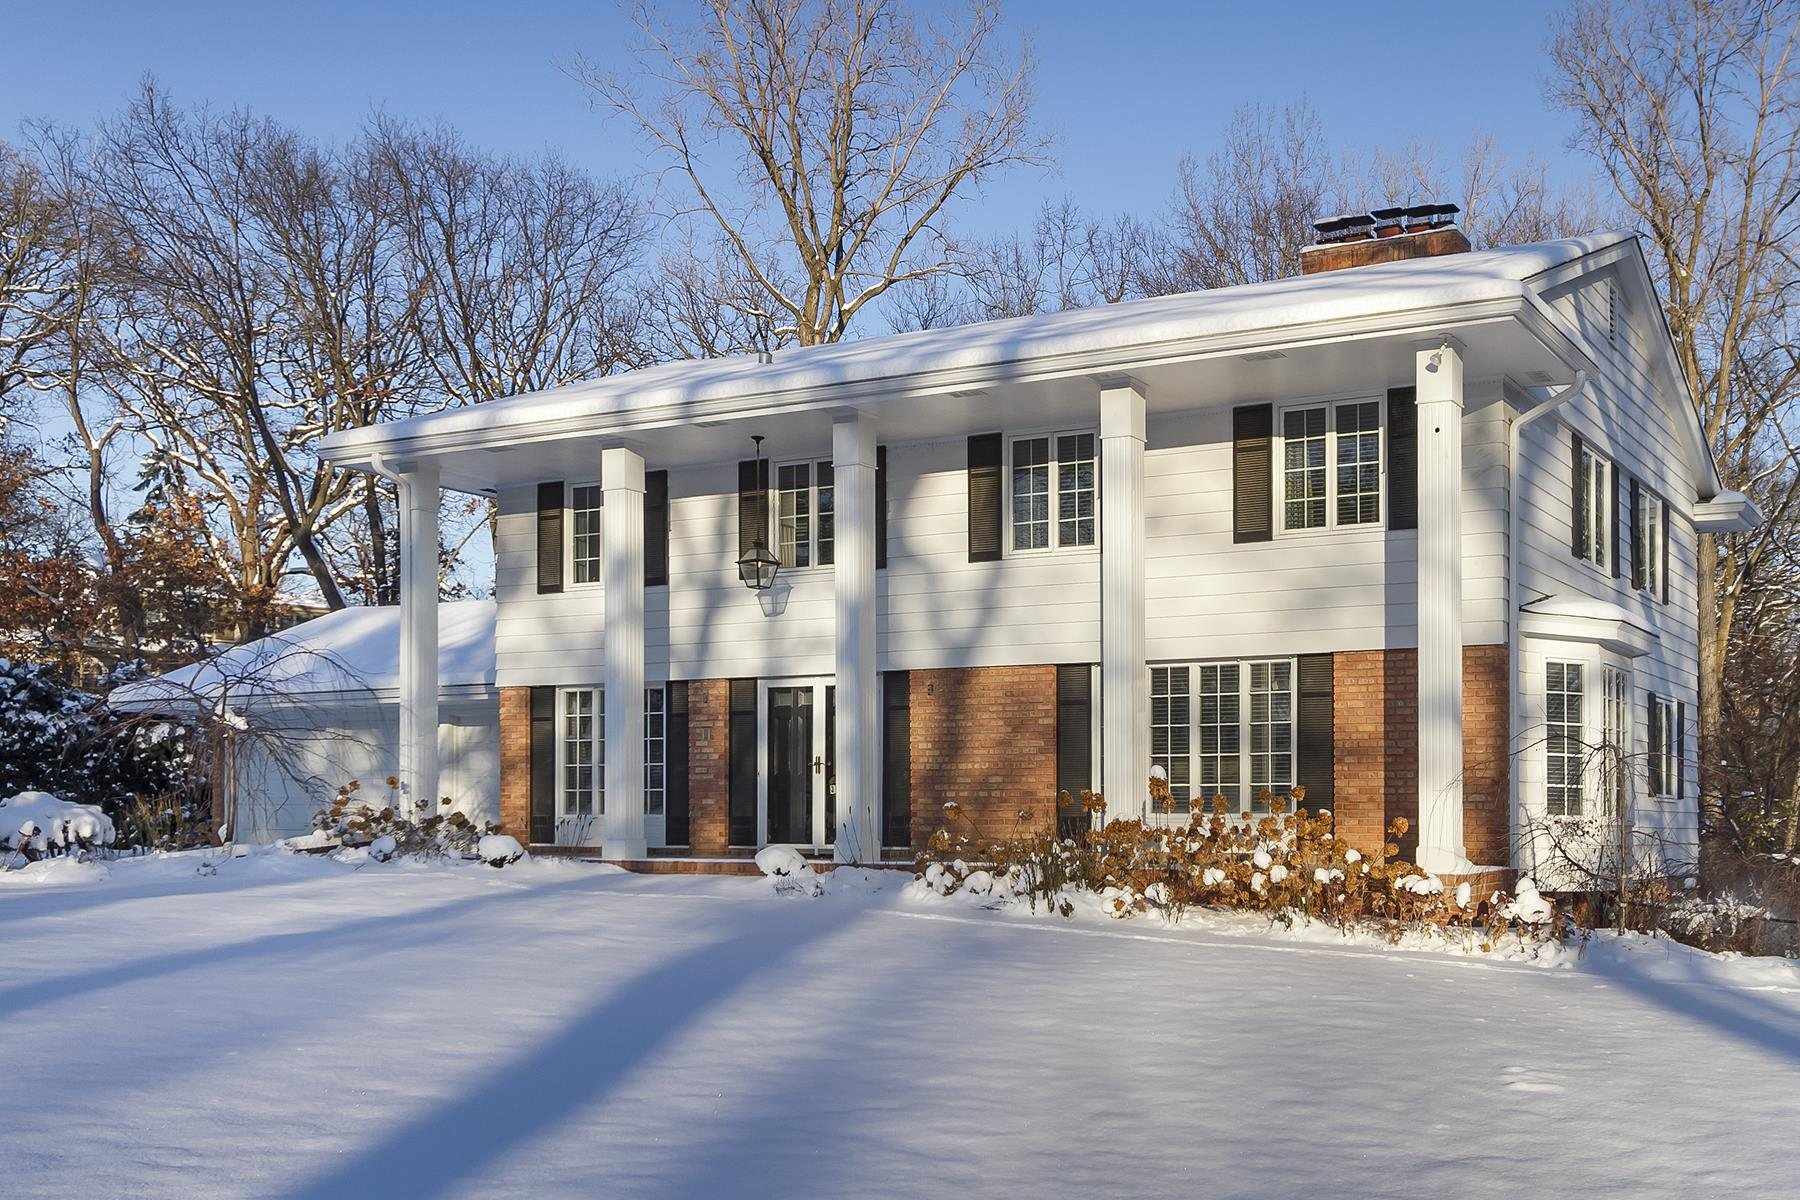 Single Family Home for Sale at 5705 Schaefer Road Edina, Minnesota, 55436 United States